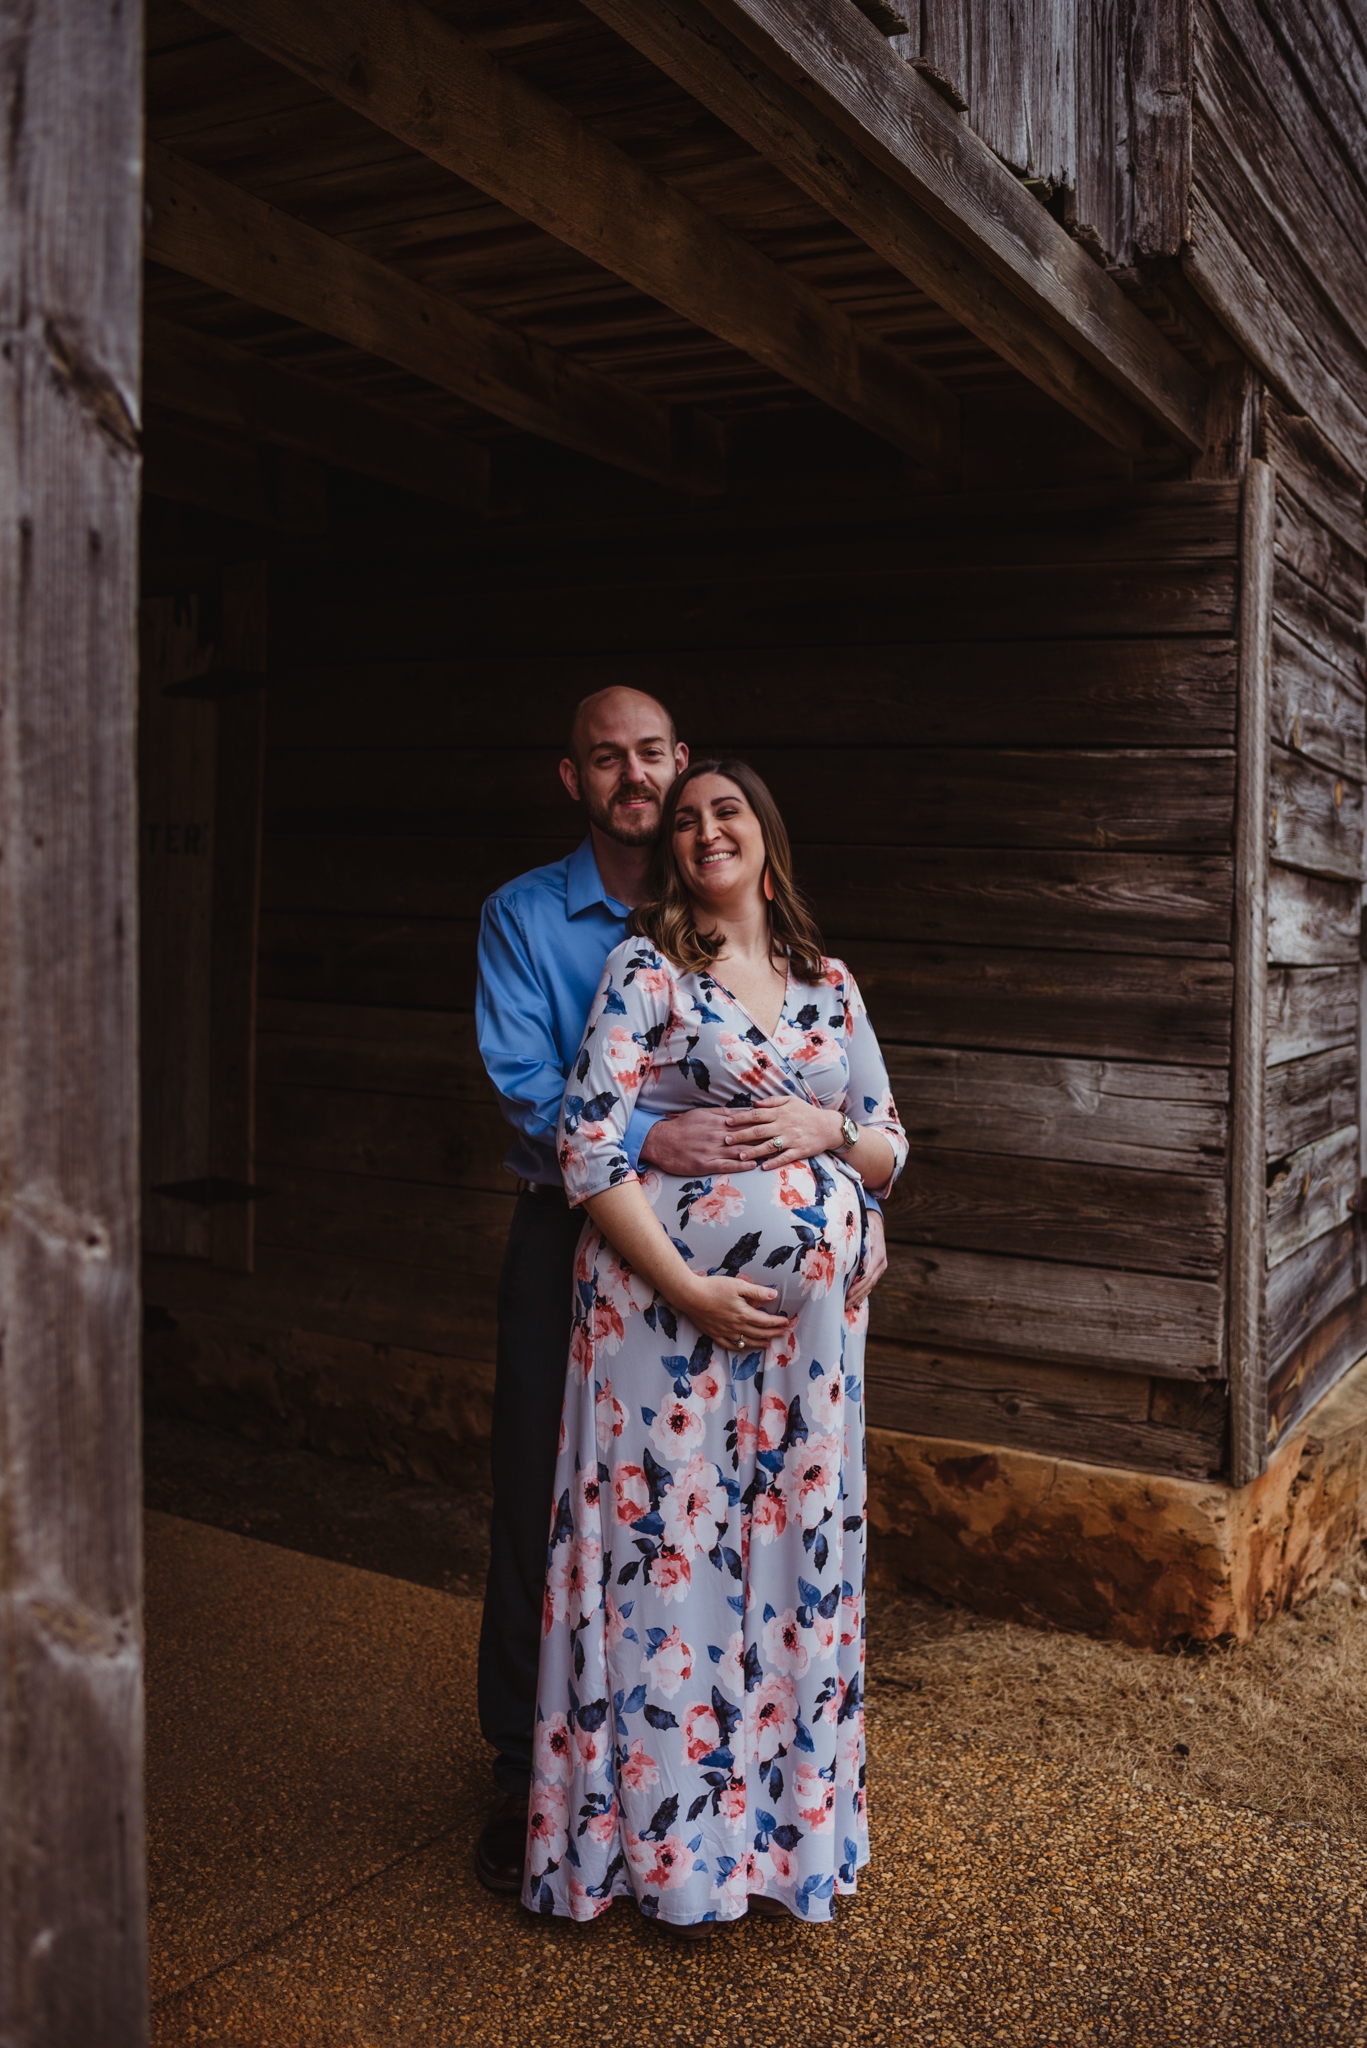 The parents to be cuddle under the old barn, picture taken by Rose Trail Images at Joyner Park in Wake Forest, NC.